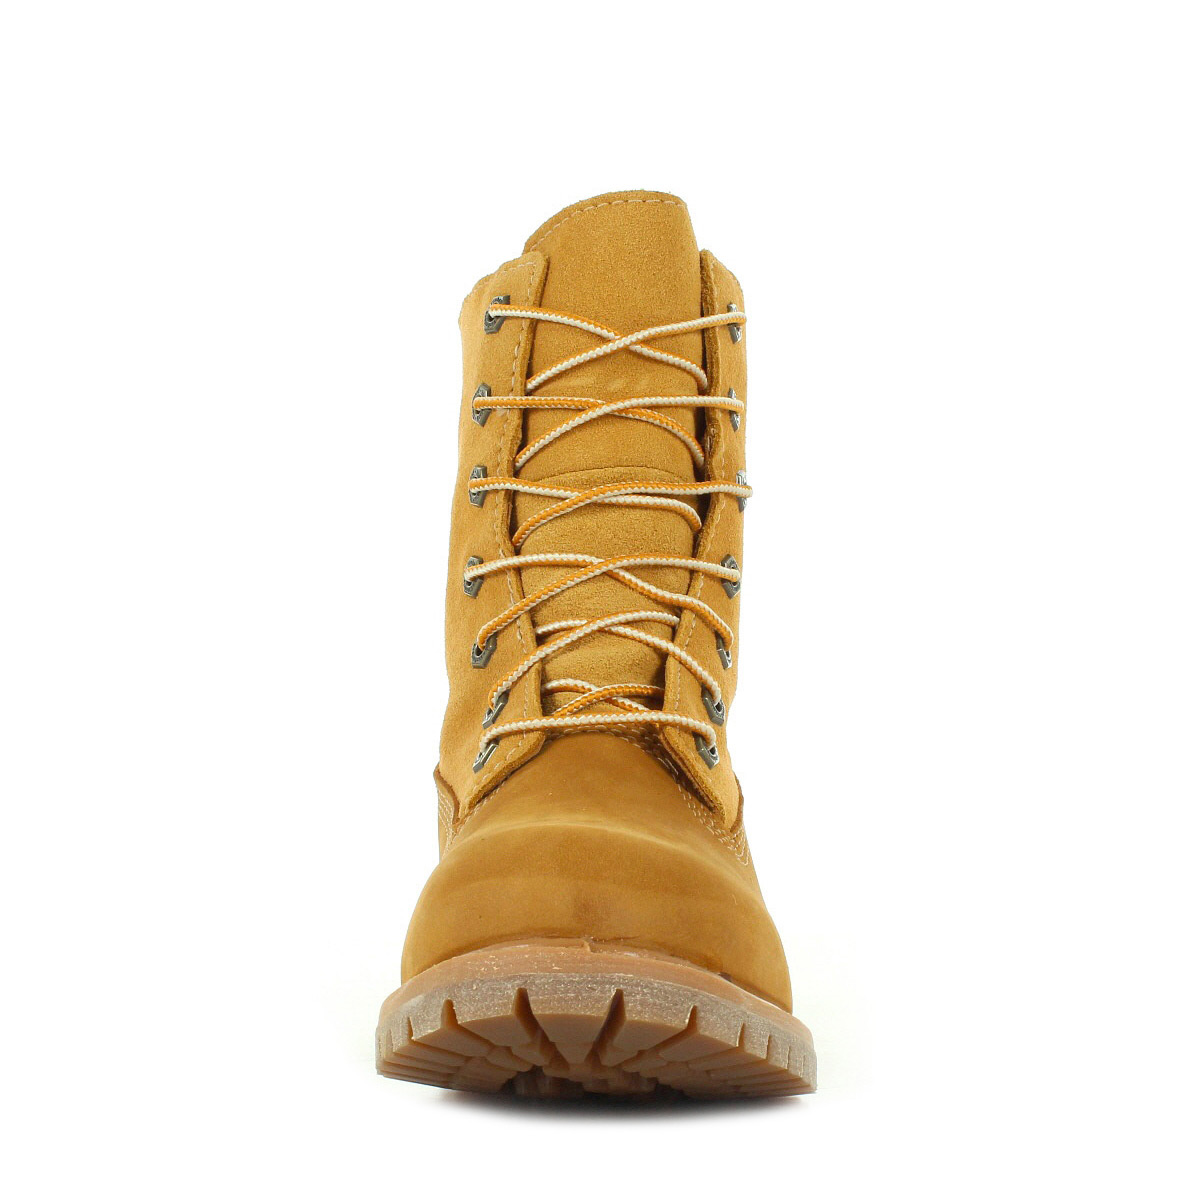 Bottes-Timberland-femme-Auth-Teddy-Fleece-Wp-Whea-taille-Camel-Cuir-Lacets